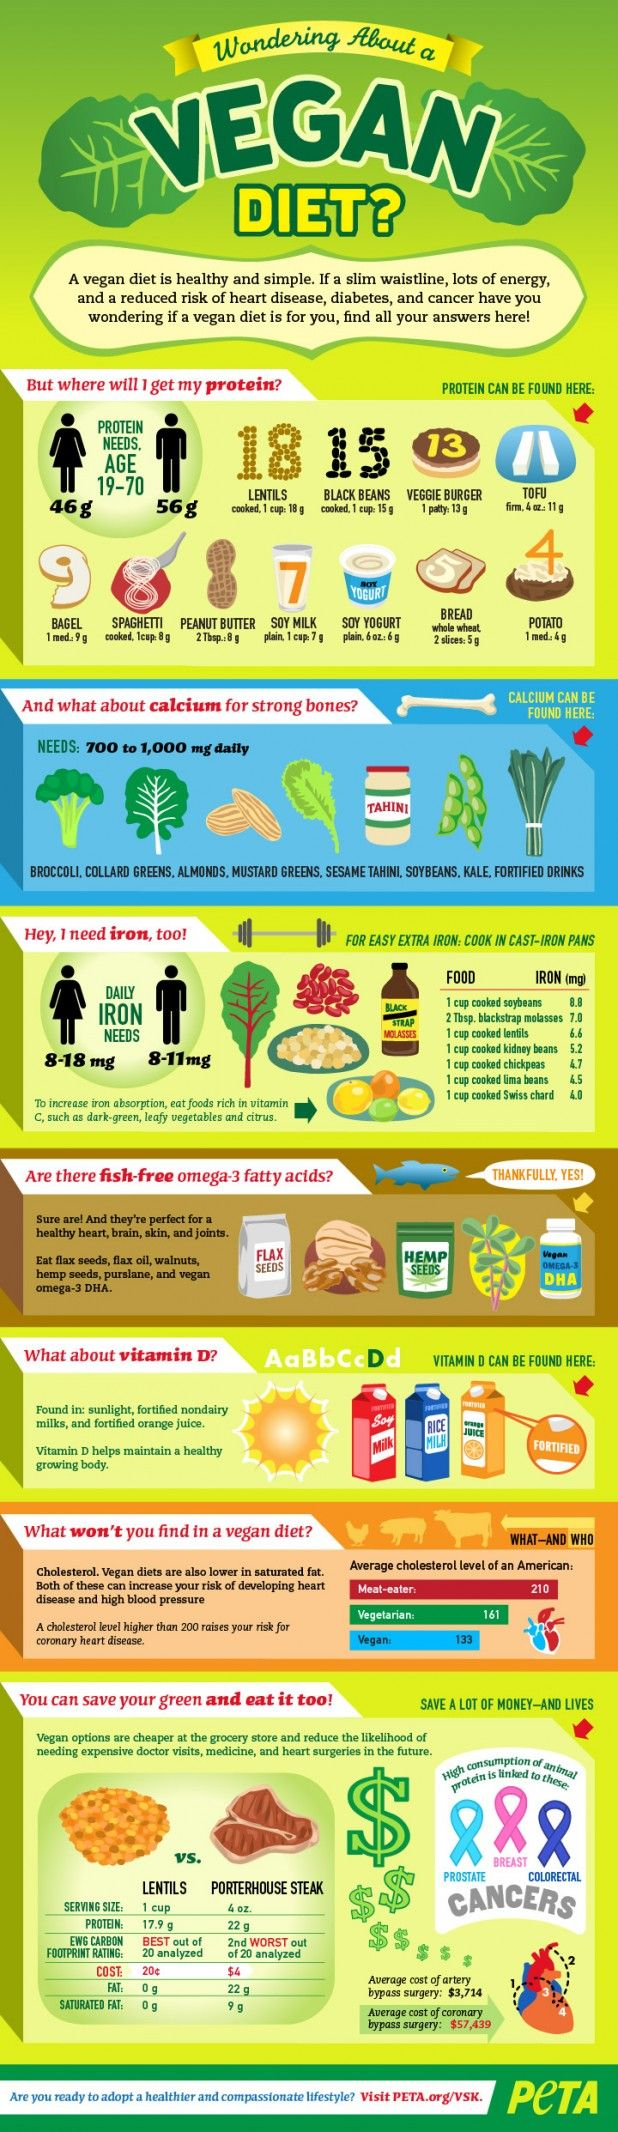 Vegan Diet Infographic. Just remember Vitamin B12! B12 is only found naturally in animal products, being originally derived from bacteria. Those following a vegan diet will need to ensure that they either consume foods fortified with vitamin B12 or take a vitamin B12 supplement. For further advice about supplementation, see your doctor and speak to an Accredited Practising Dietitian (APD).